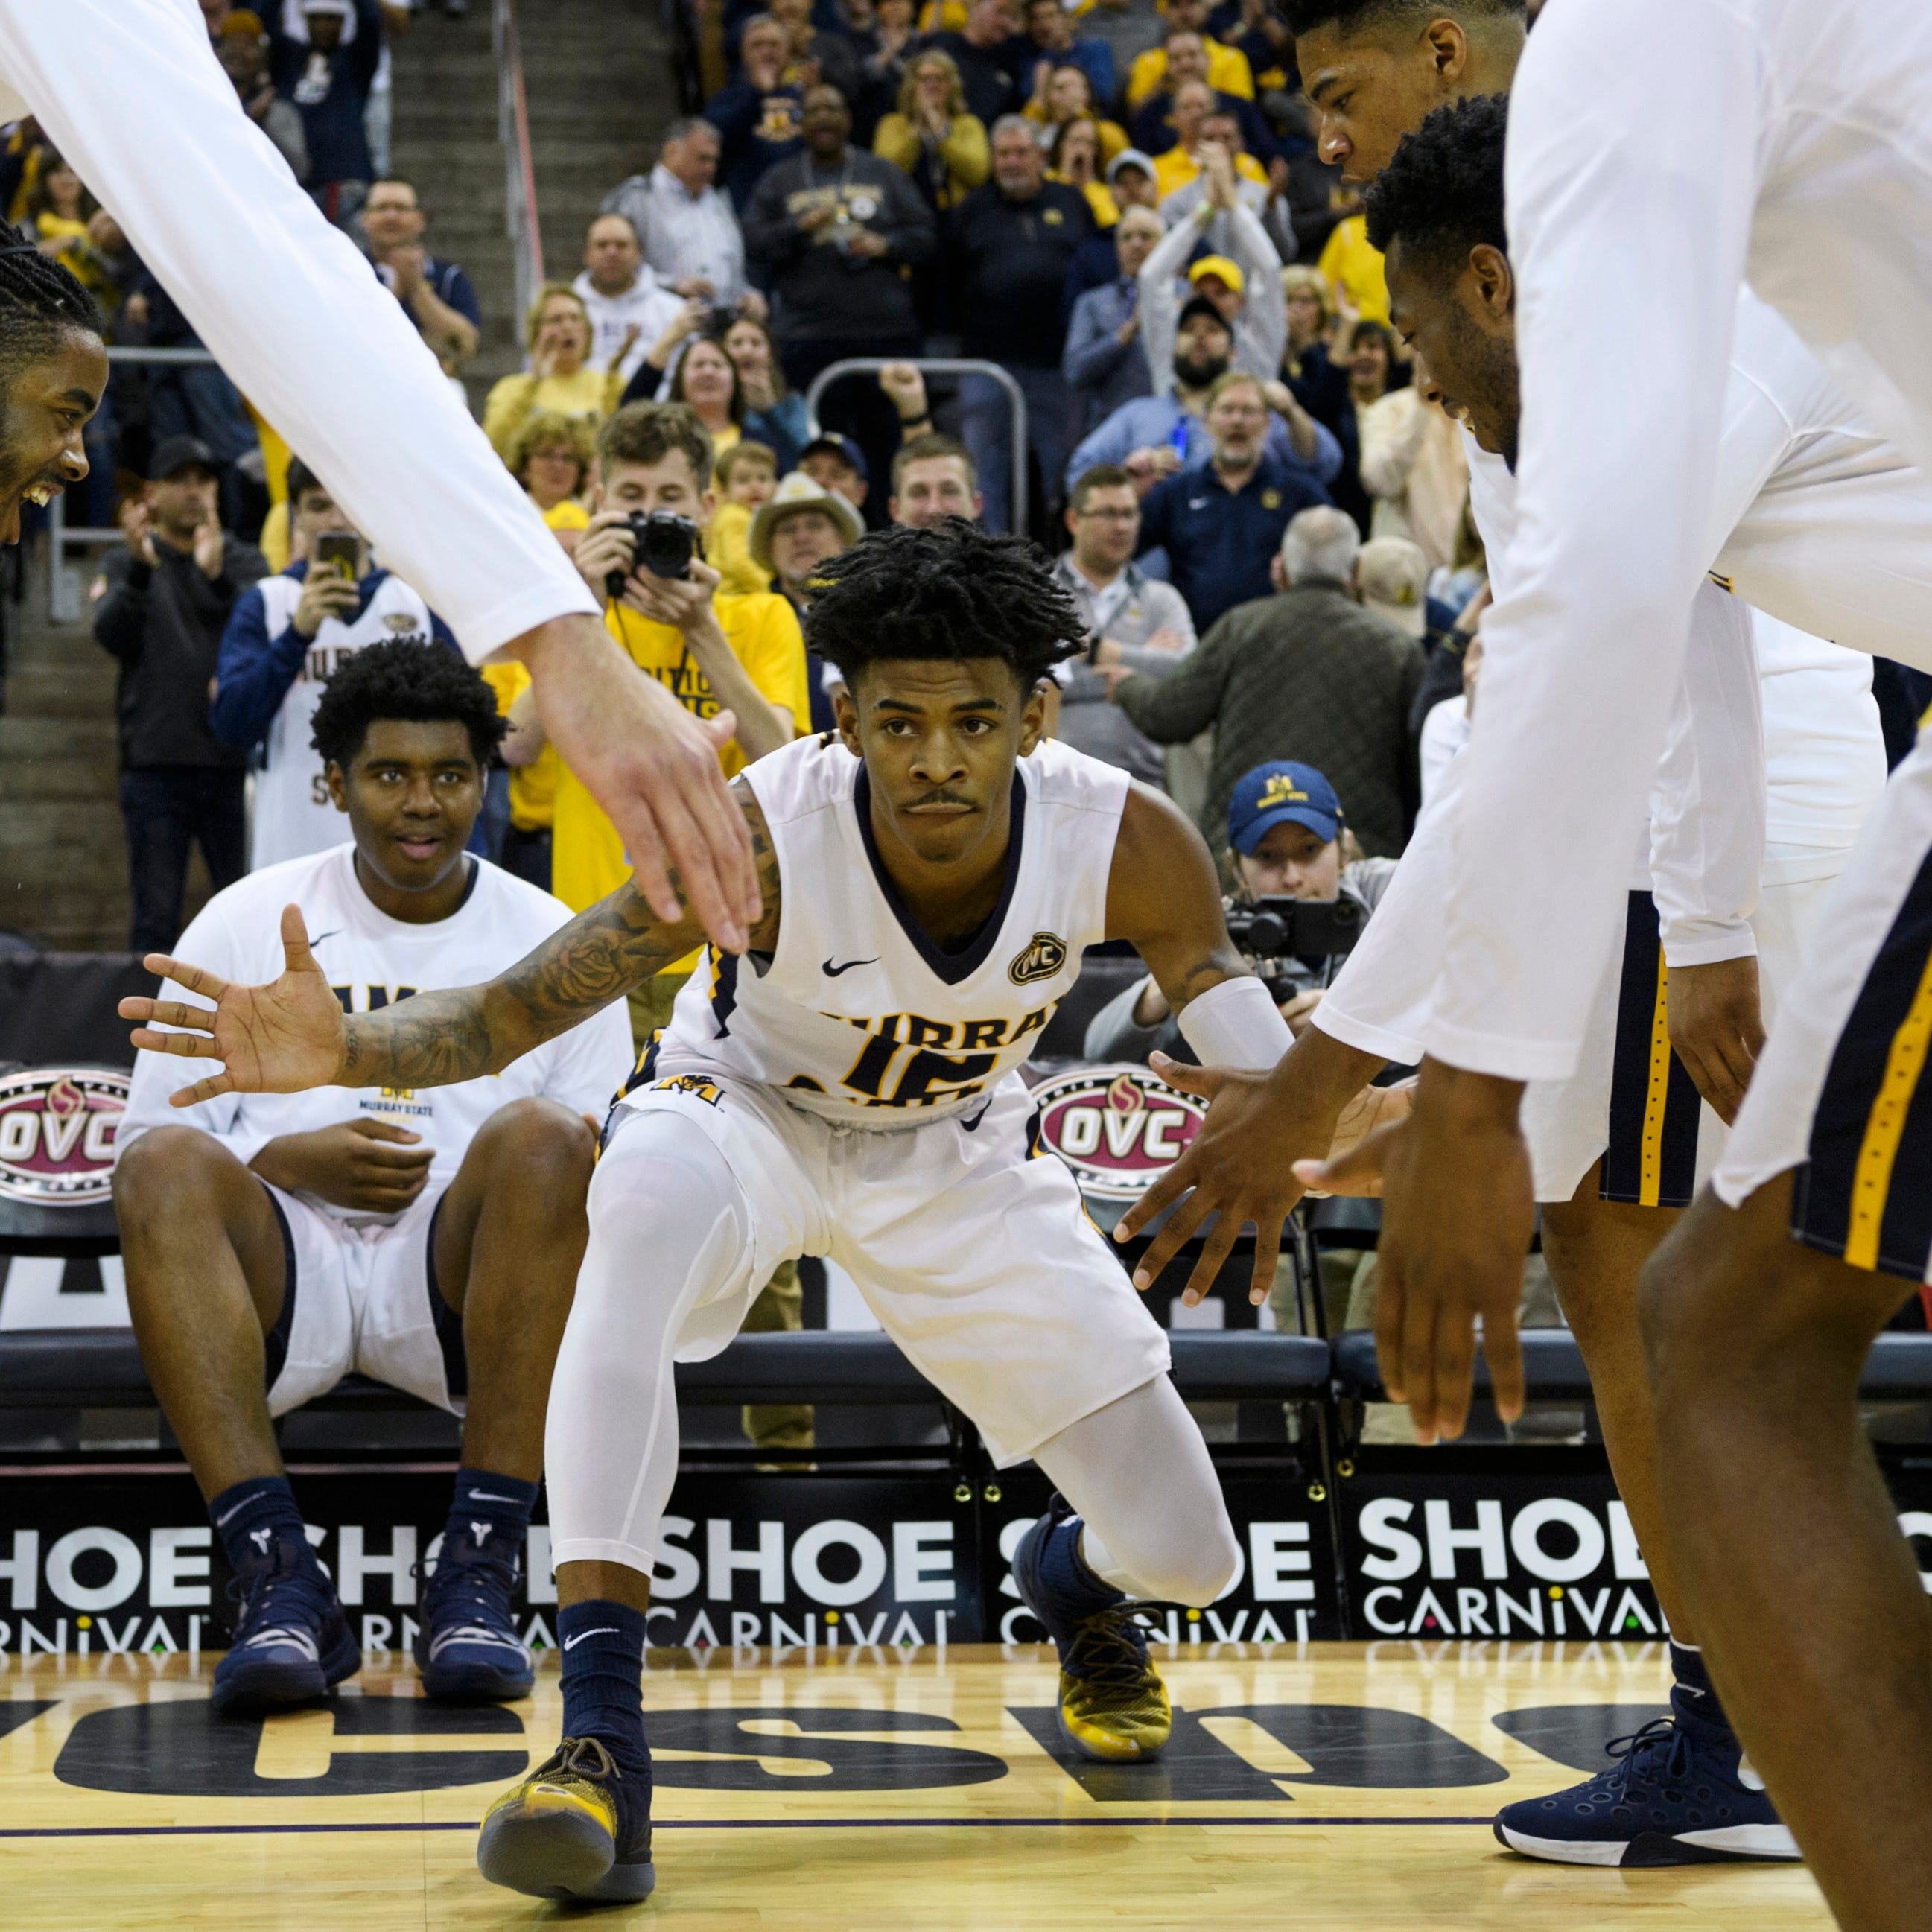 Get to know Murray State's Ja Morant, he could be the Phoenix Suns' future point guard